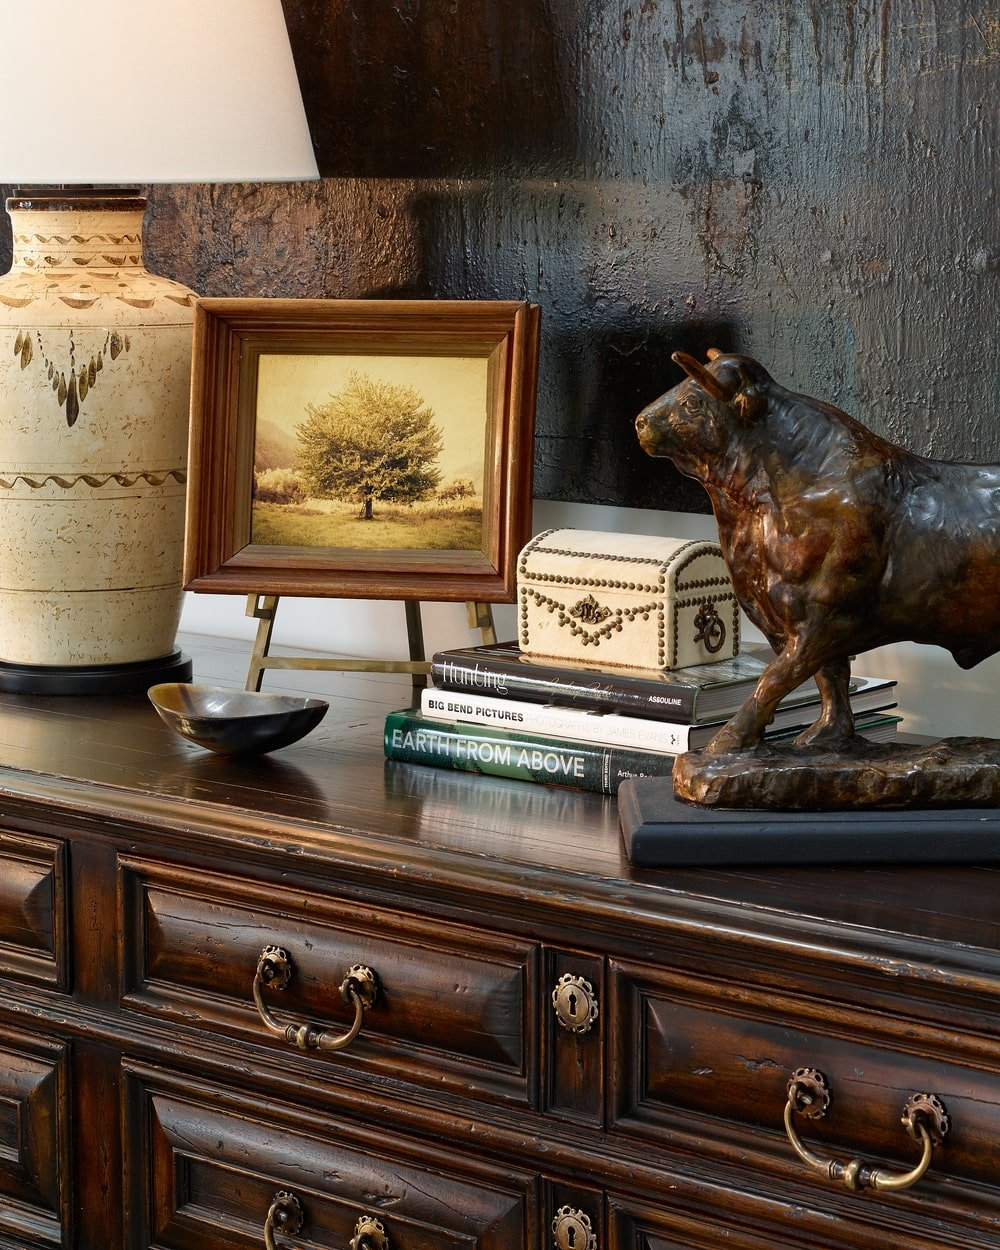 This is a close look at the brown wooden dresser adorned with various decors on top along with a table lamp.